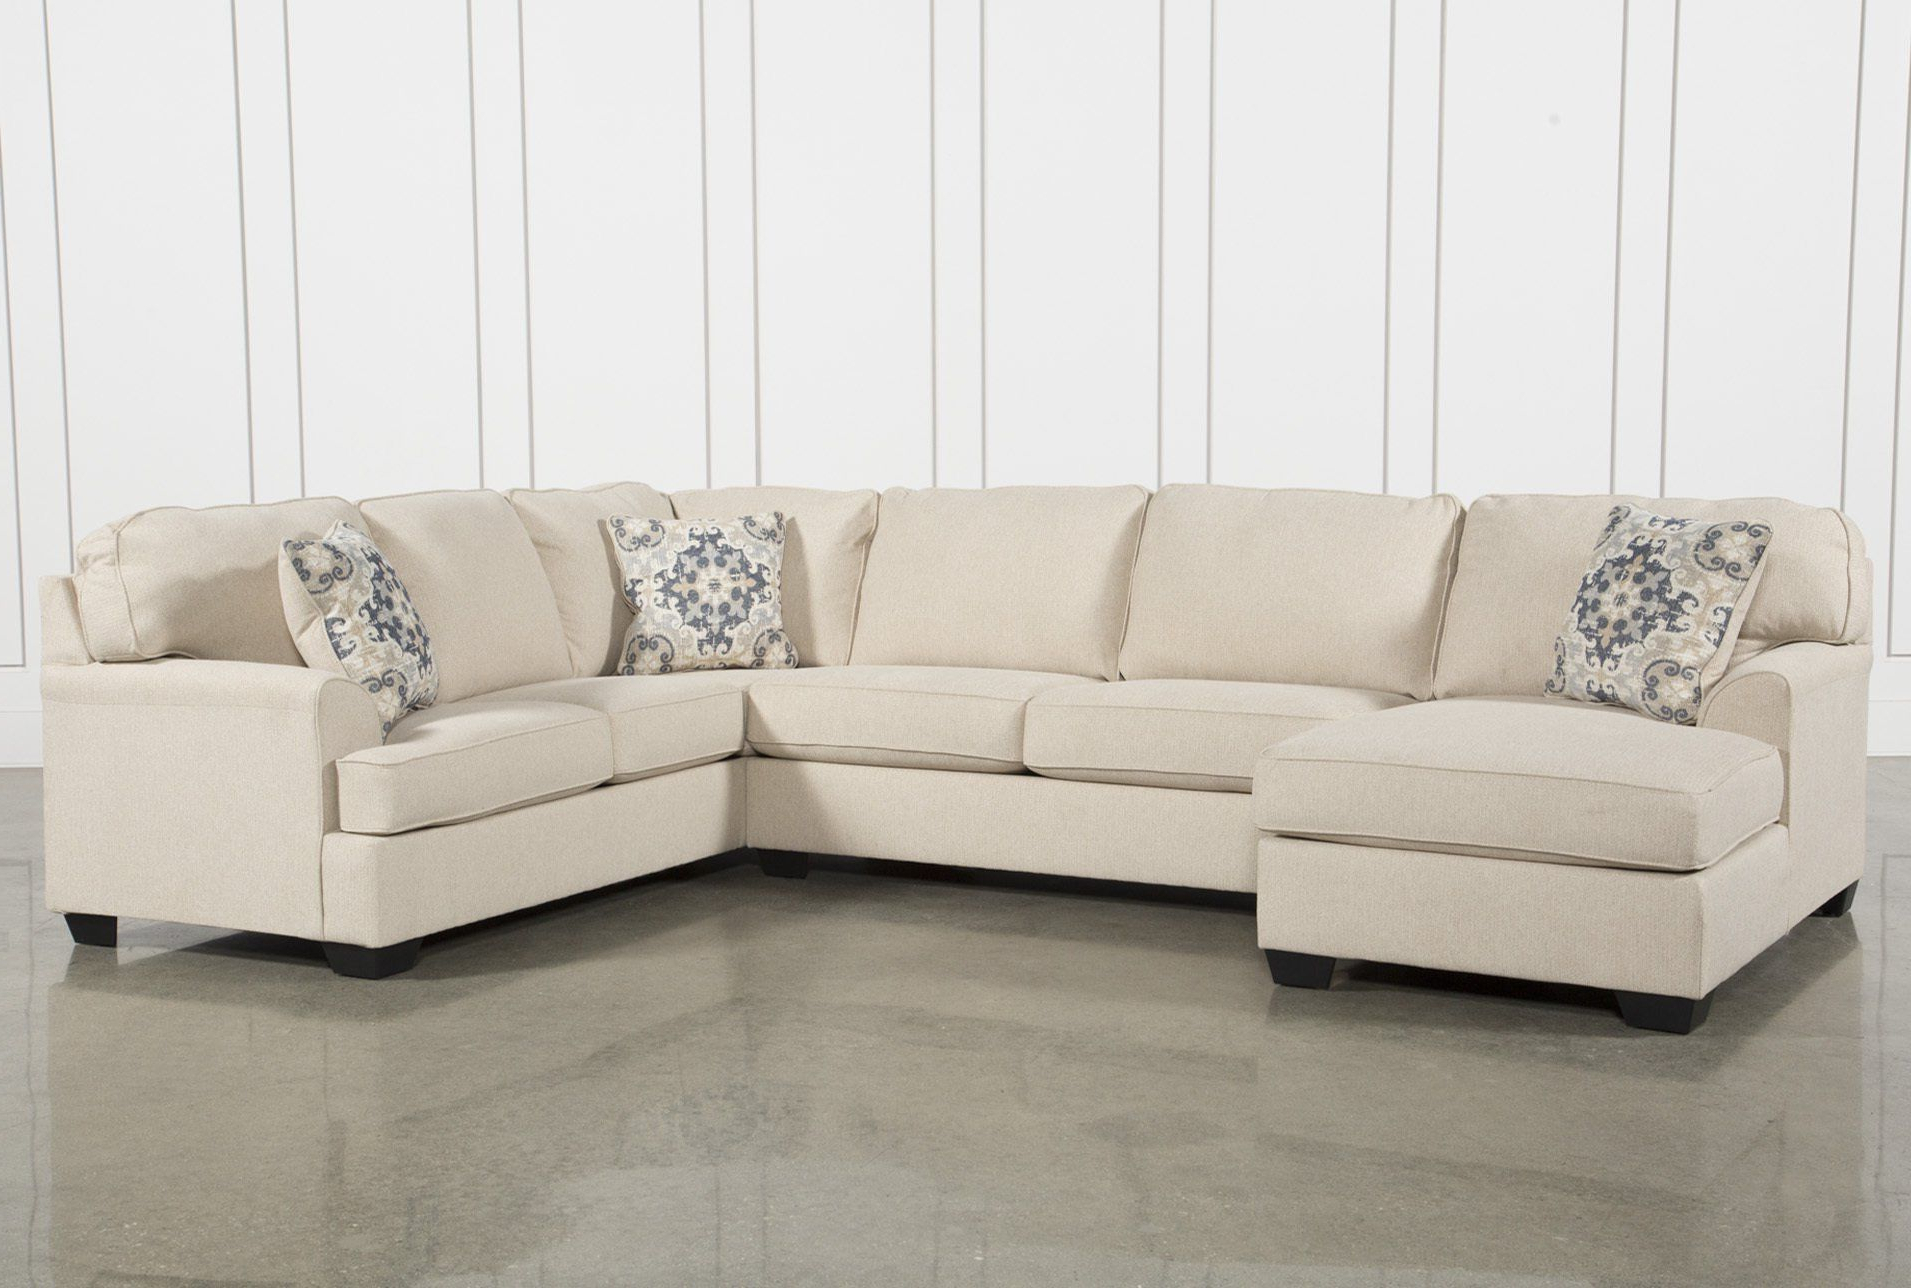 Malbry Point 3 Piece Sectional W/laf Chaise (View 10 of 20)